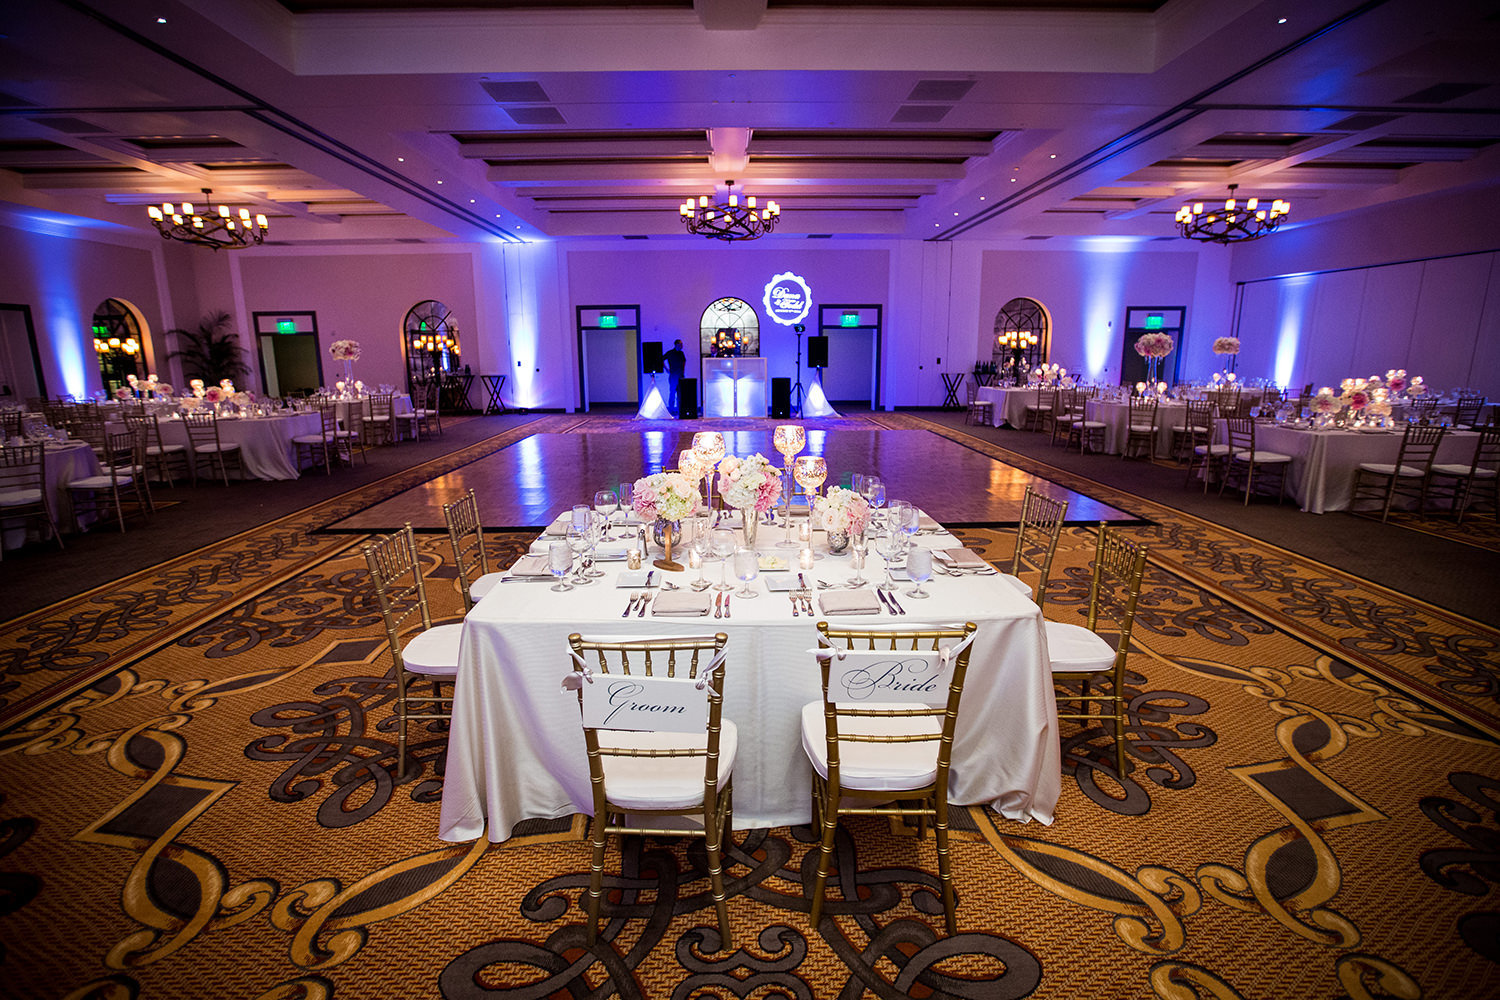 The Bride and Grooms wedding head table at their reception.  Purple uplighting